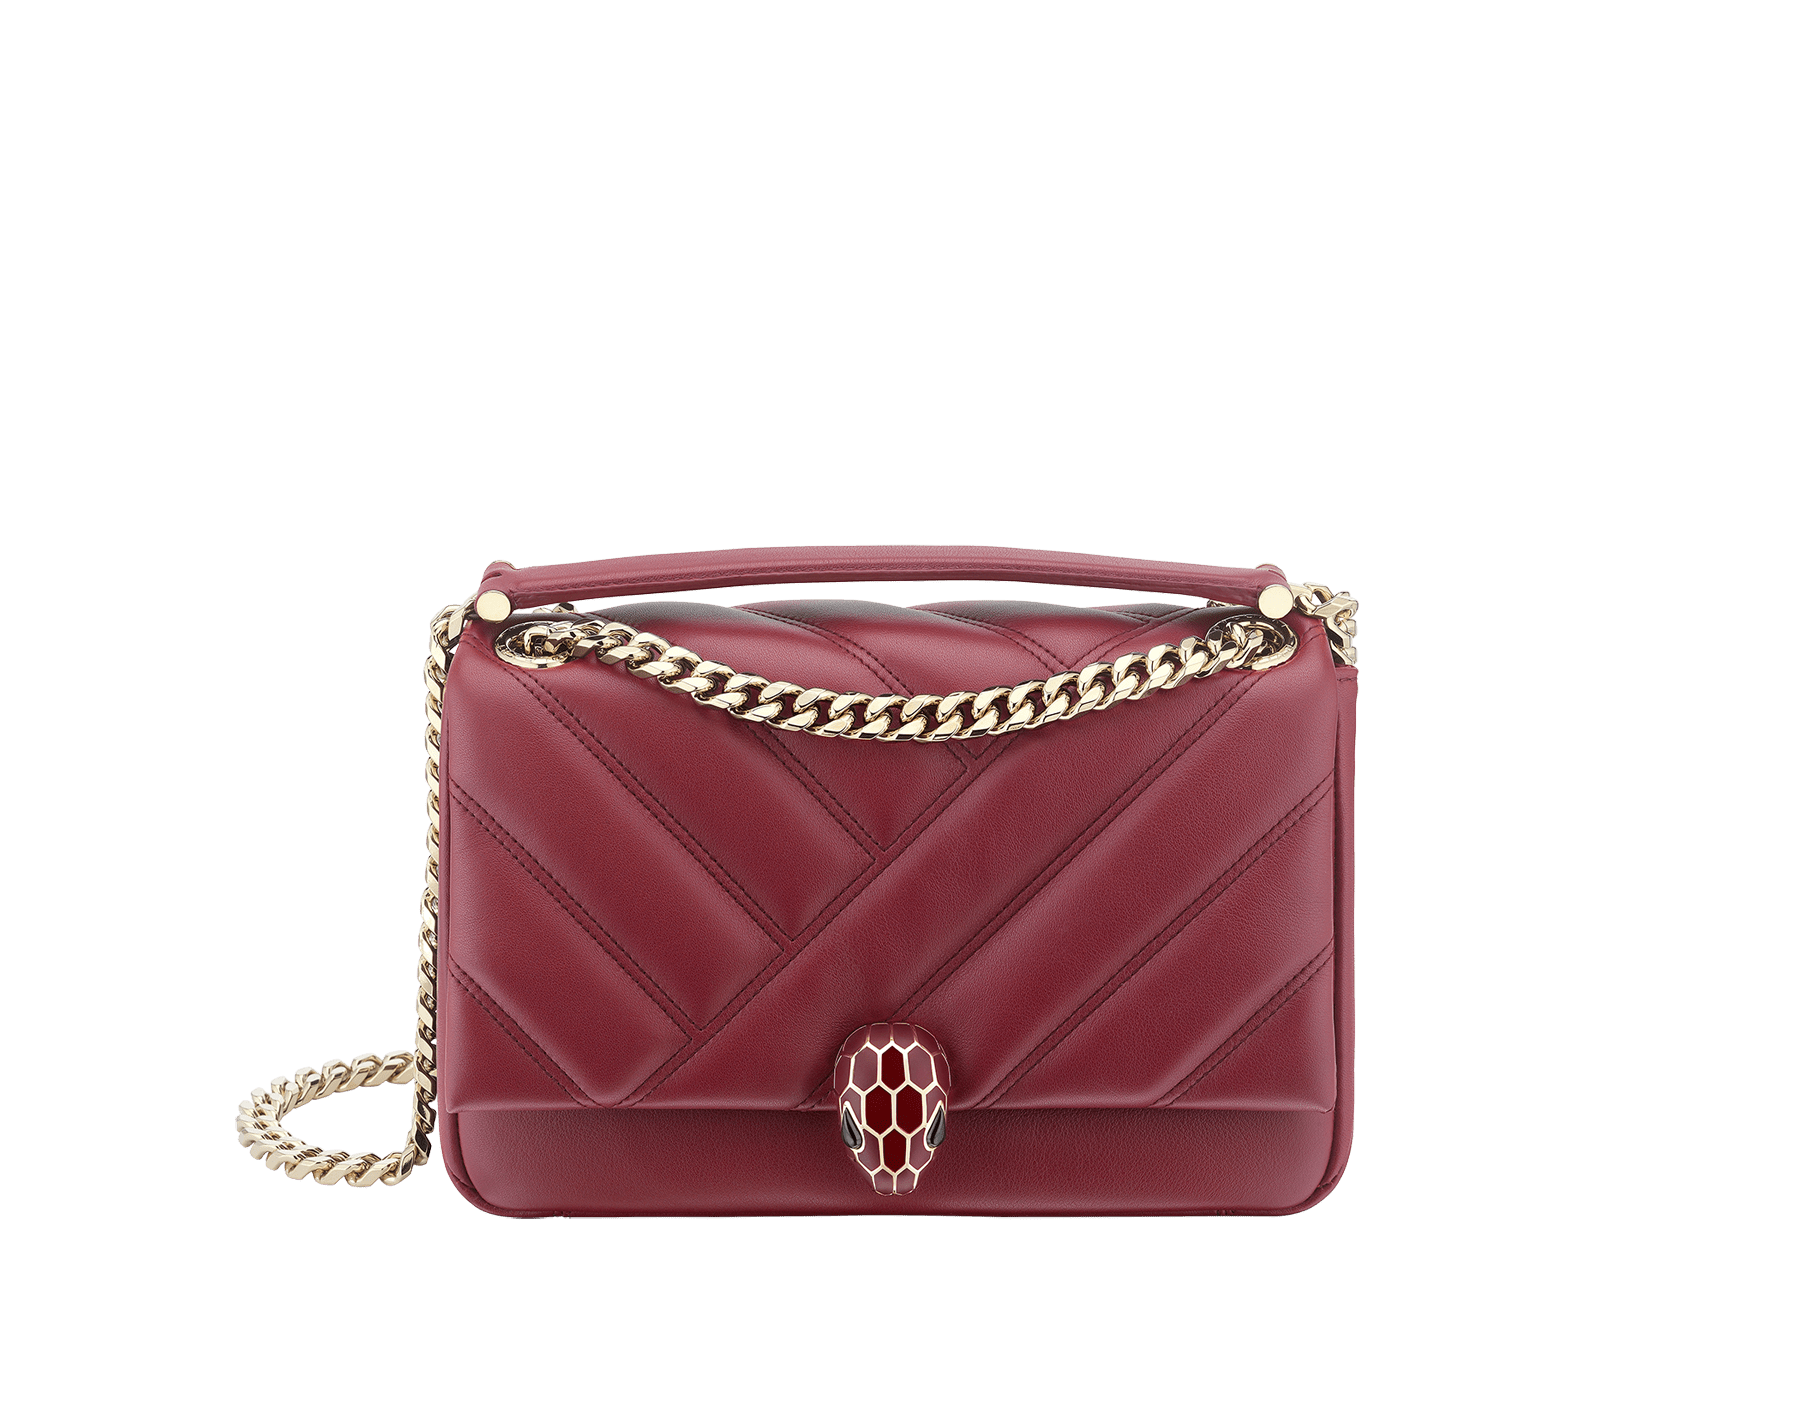 Serpenti Cabochon shoulder bag in soft matelassé Roman garnet nappa leather with a graphic motif, and Roman garnet calf leather. Light gold-plated brass tempting snakehead closure in matte Roman garnet and shiny Roman garnet enamel and black onyx eyes. 981-NSM image 1